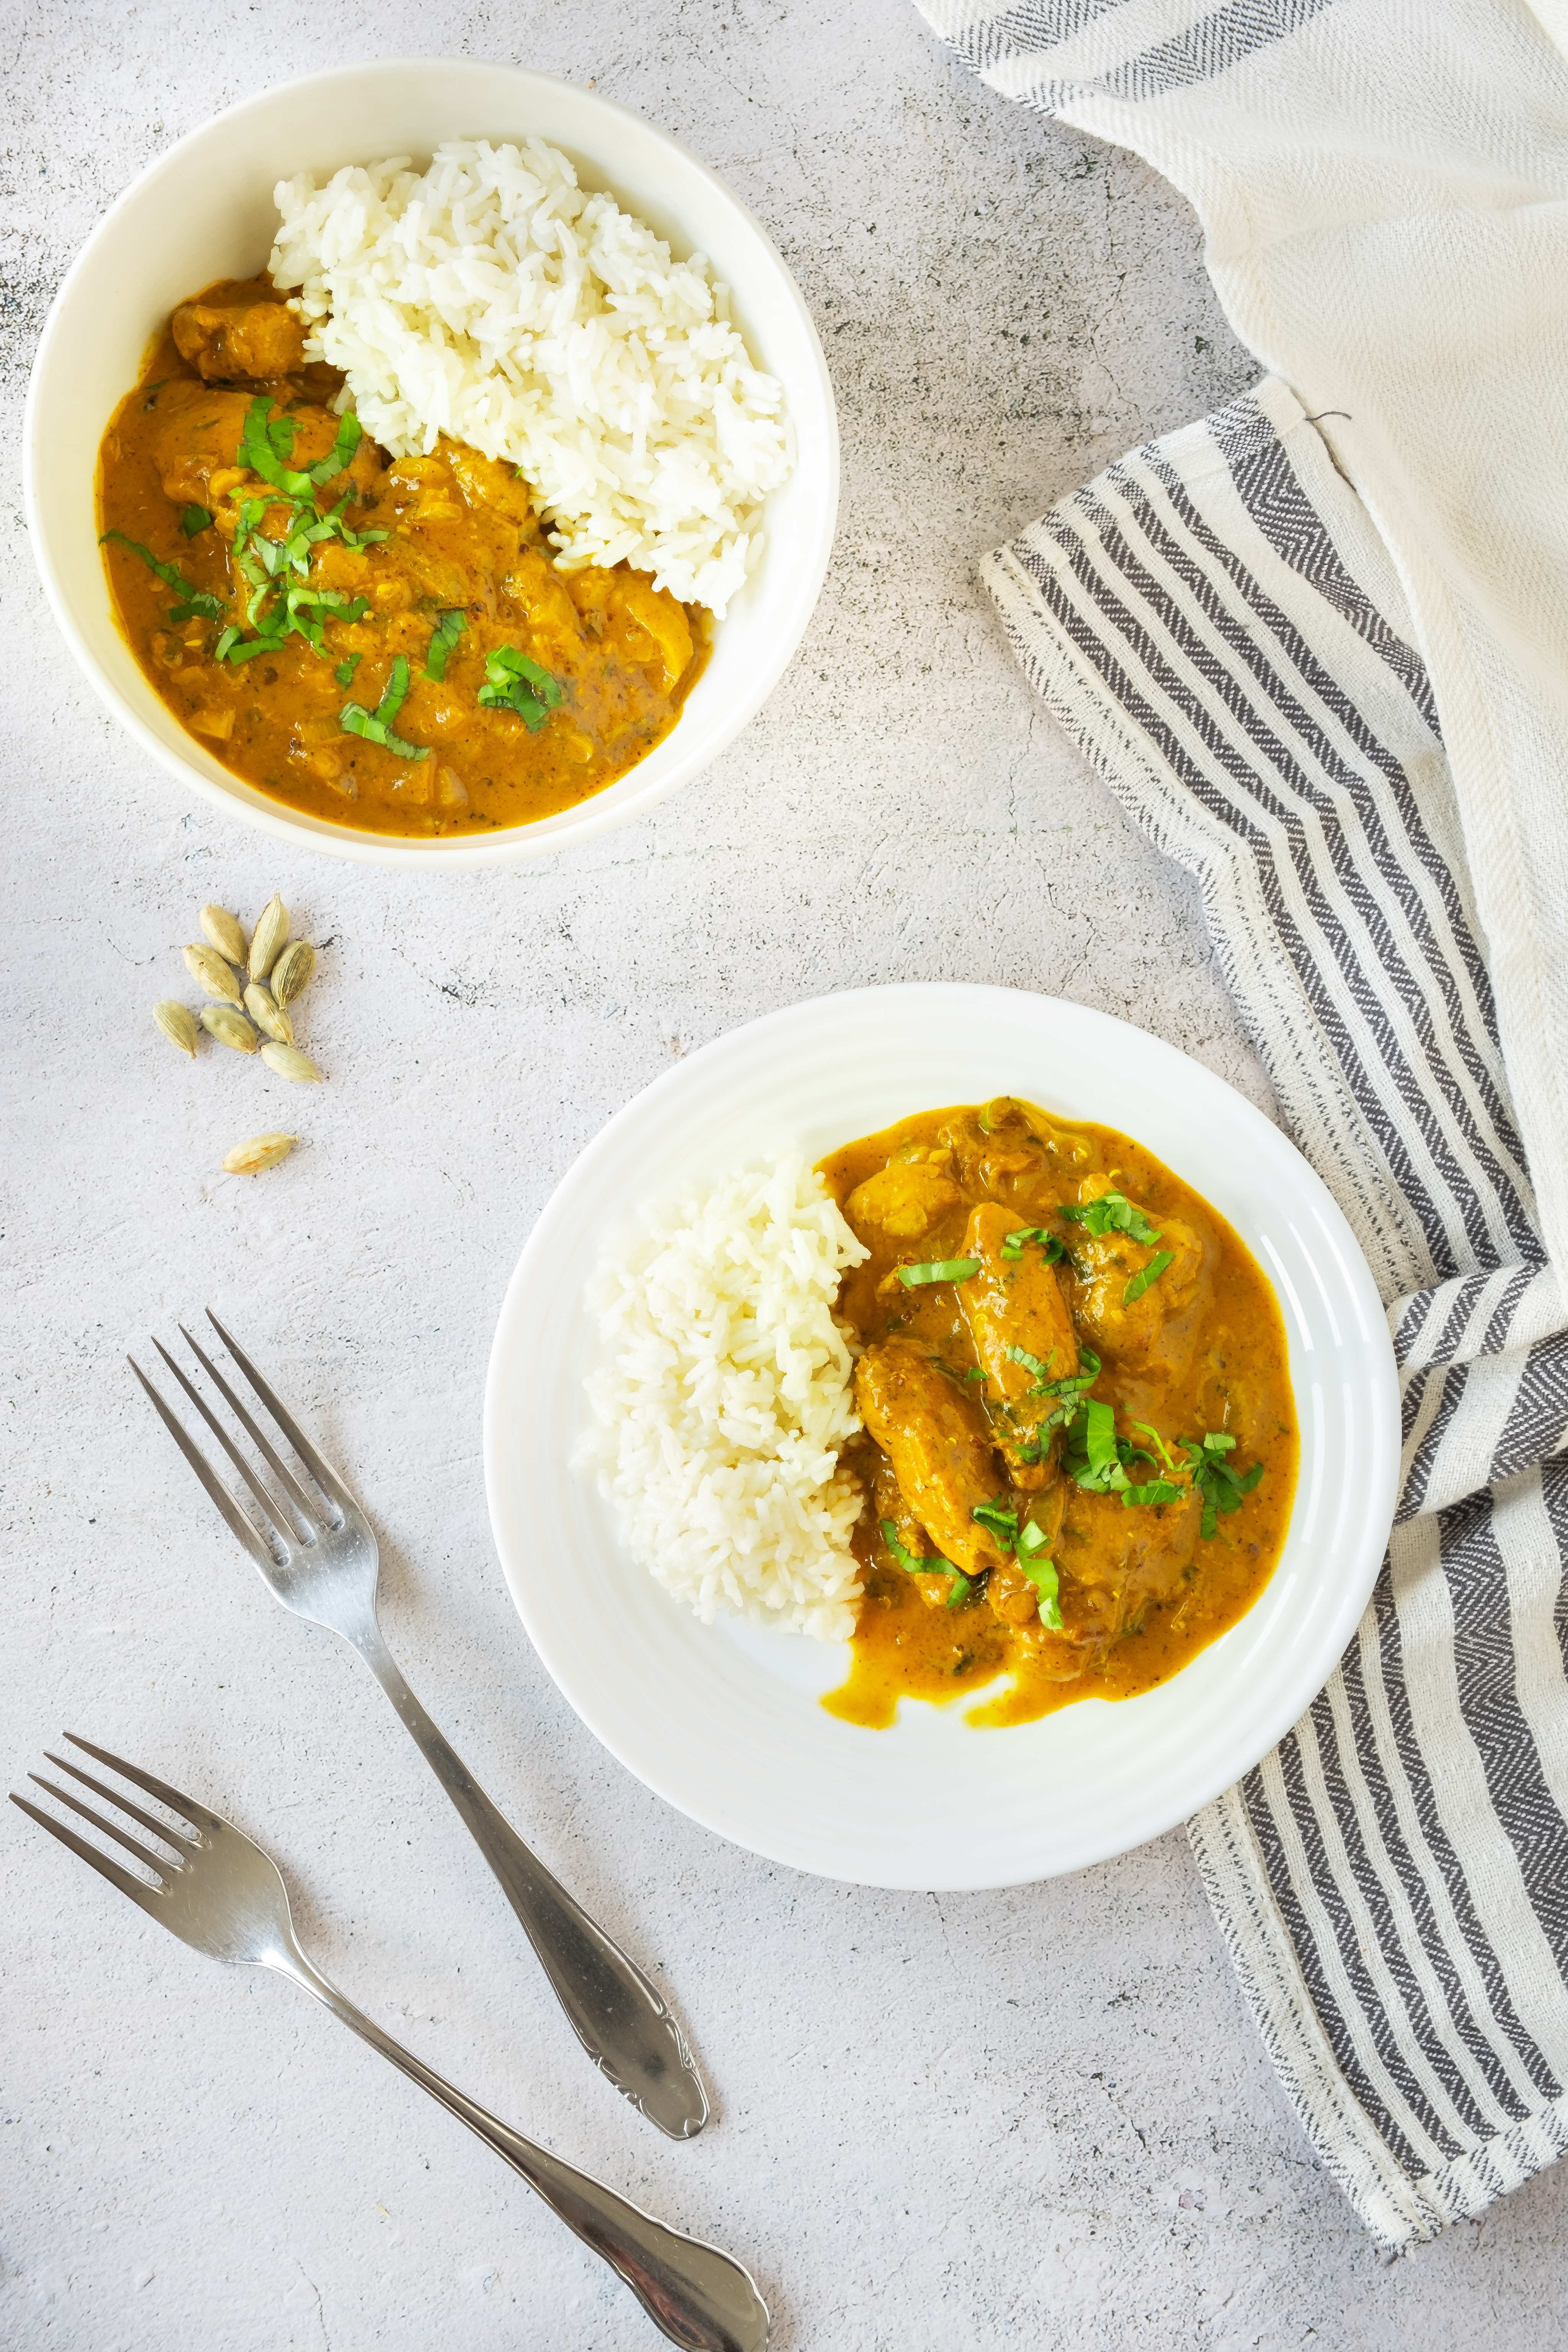 vadouvan curry chicken on plate.